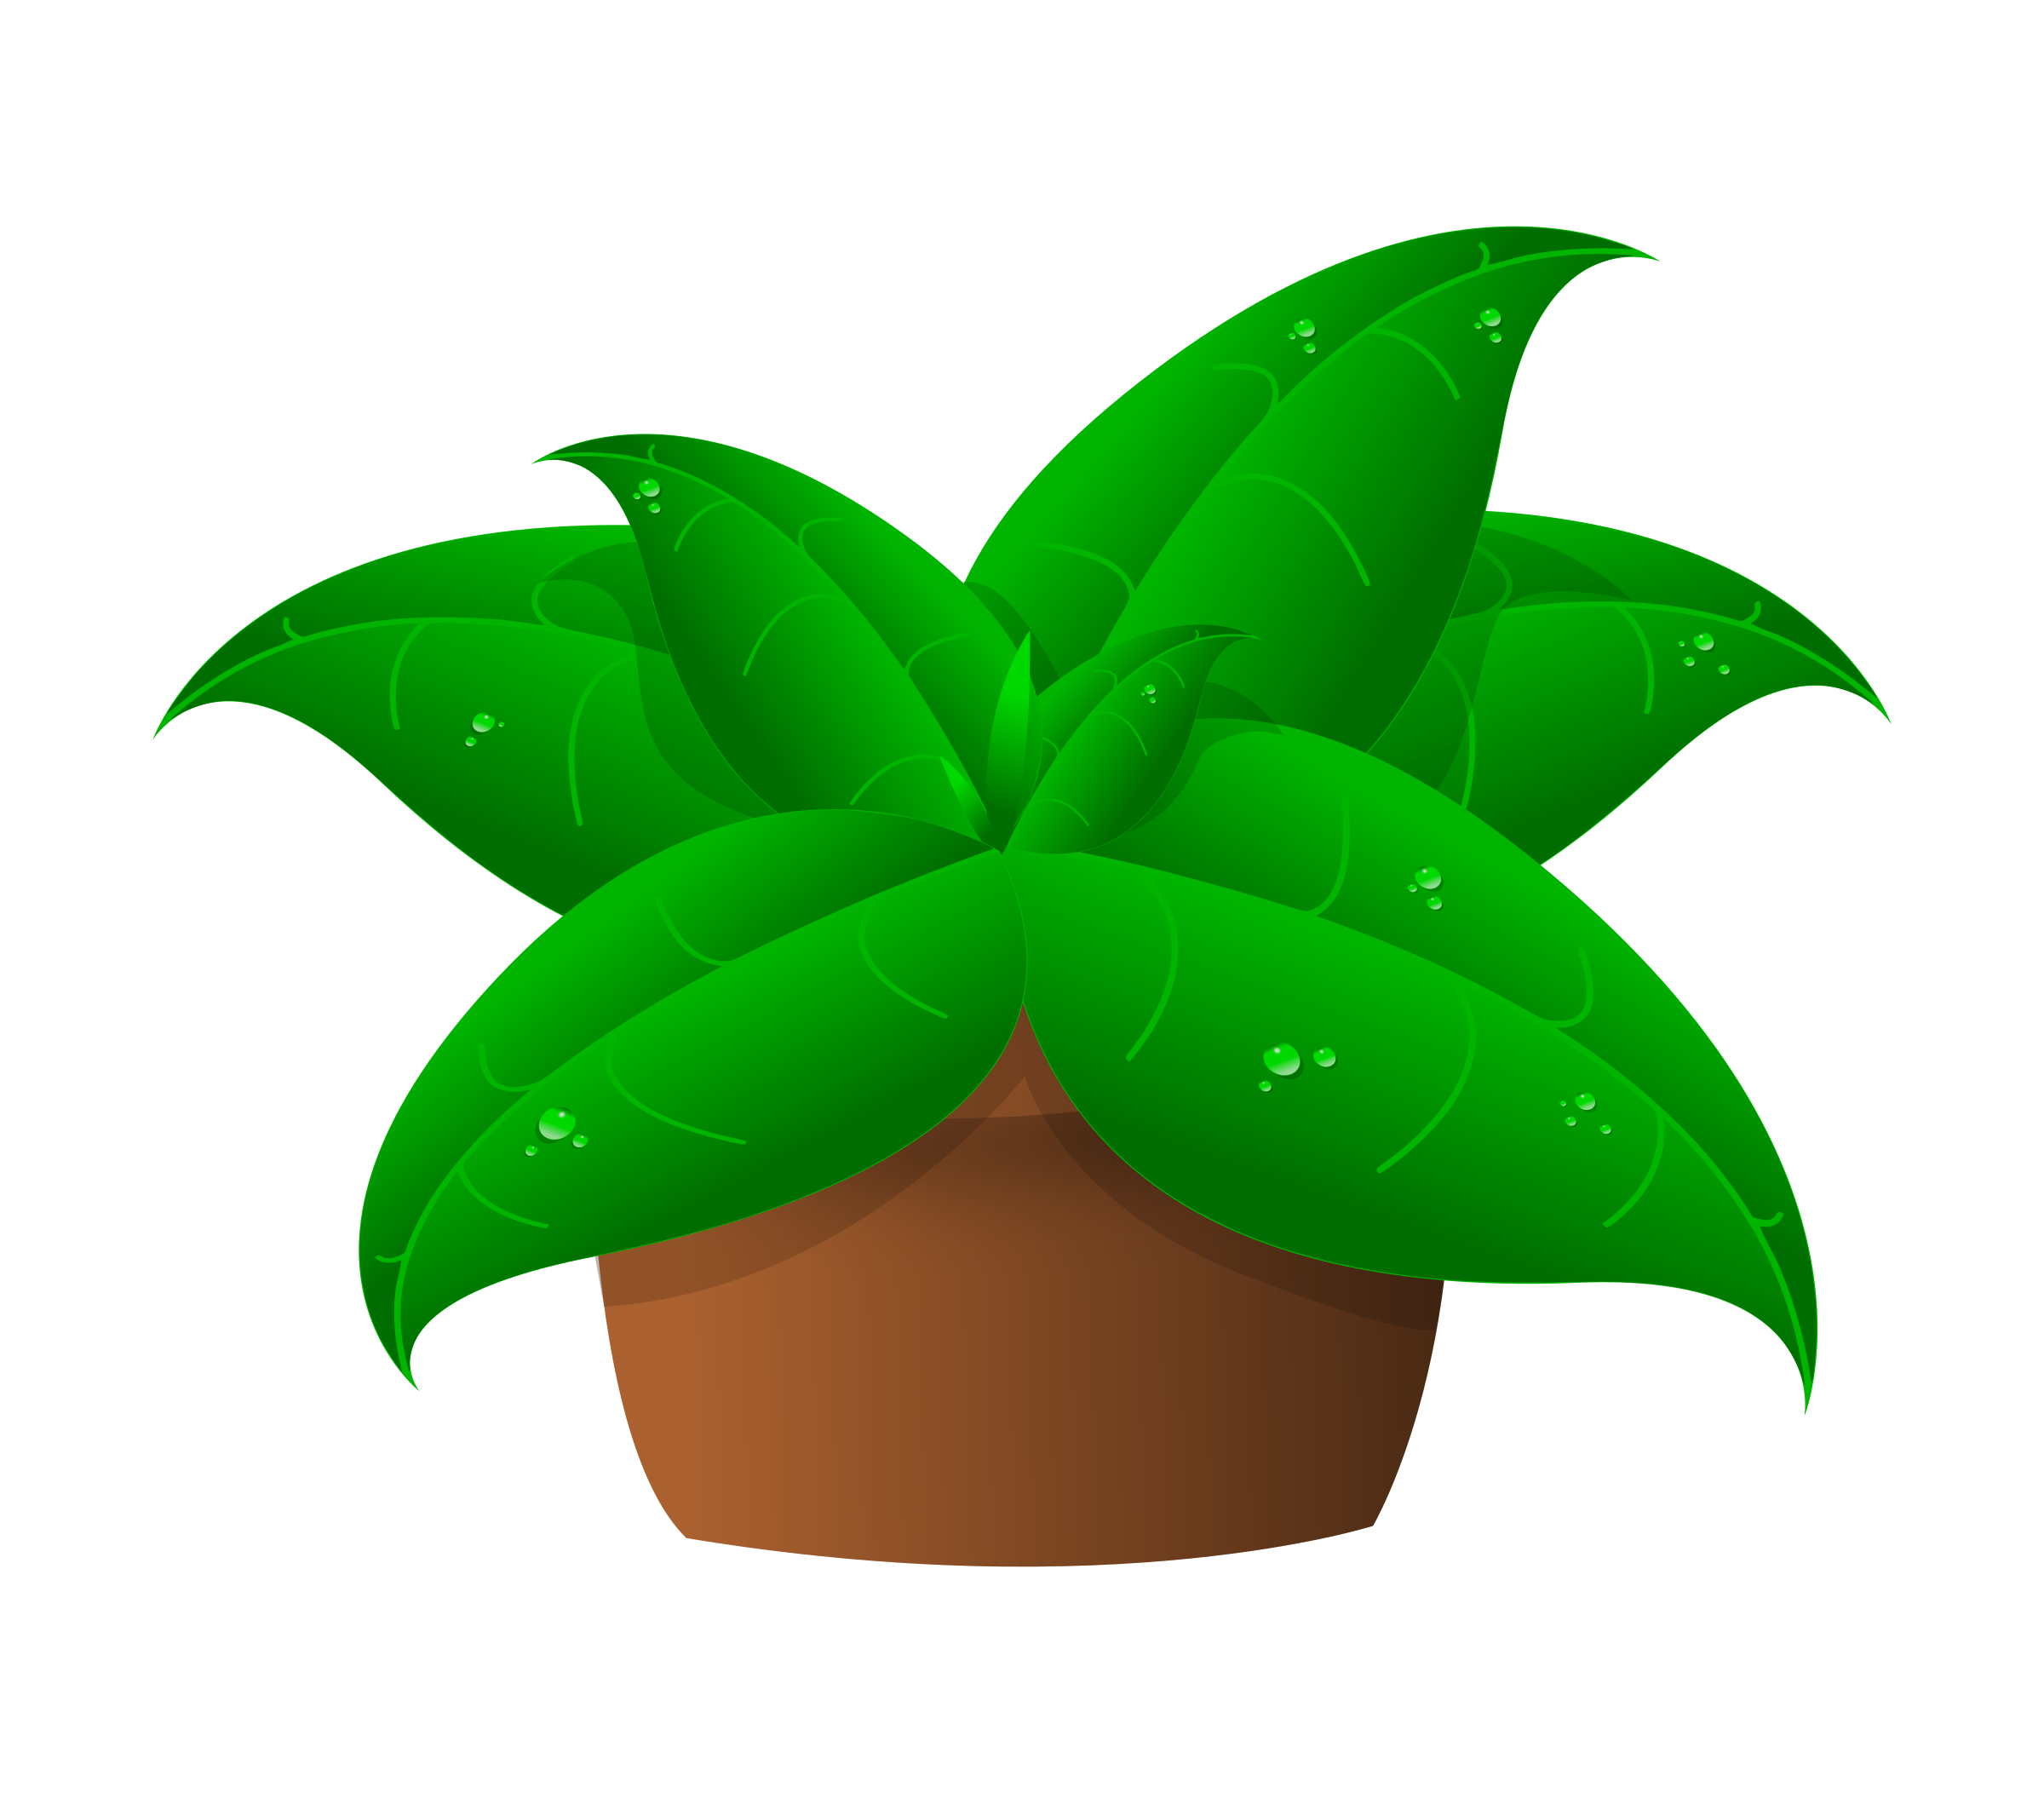 Seedling clipart plantae. Plants cilpart crafty inspiration